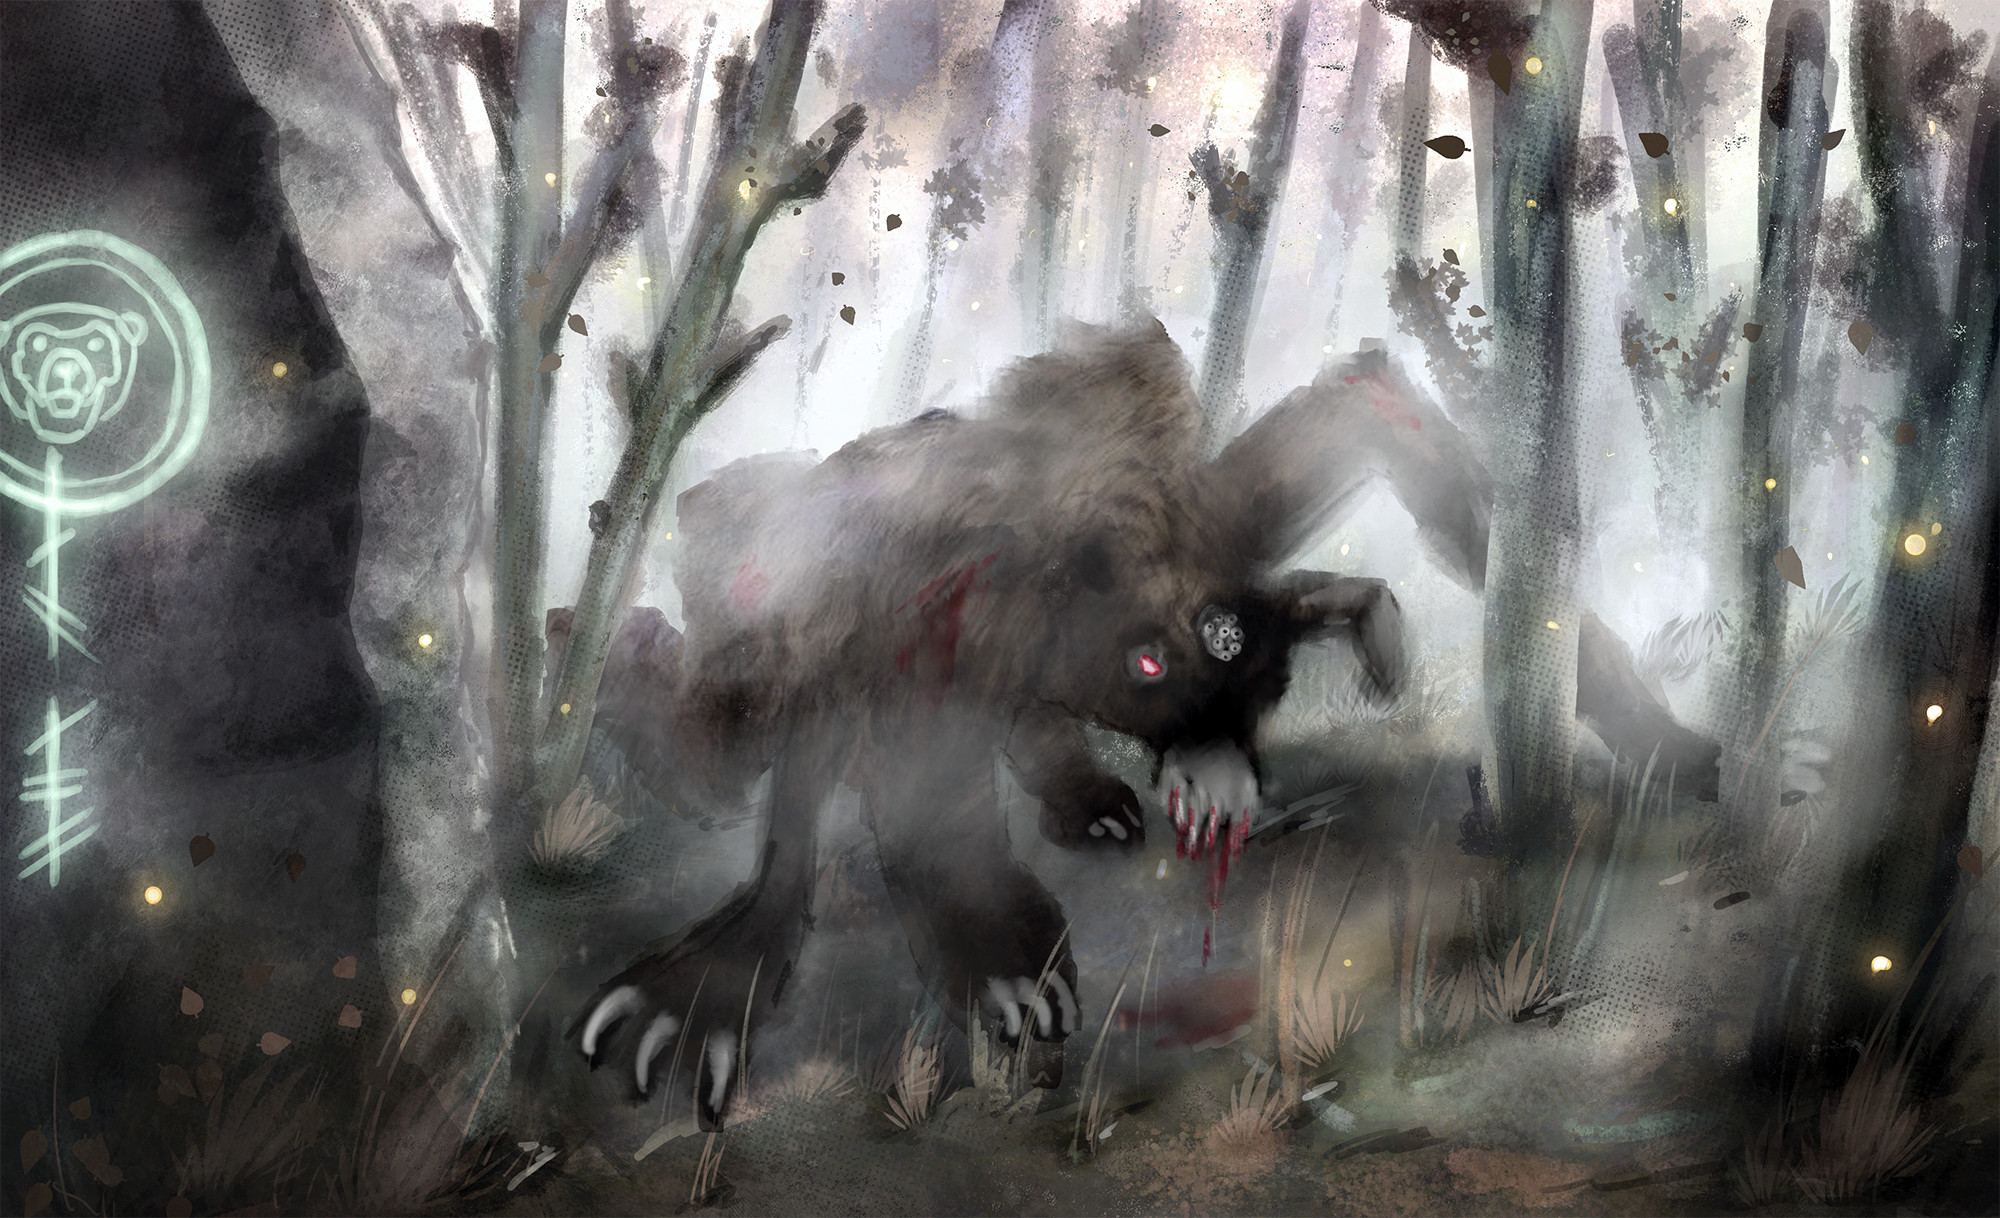 Mood illustration for an unpublished project. A bear monster in the misty woods of a Celtic island.